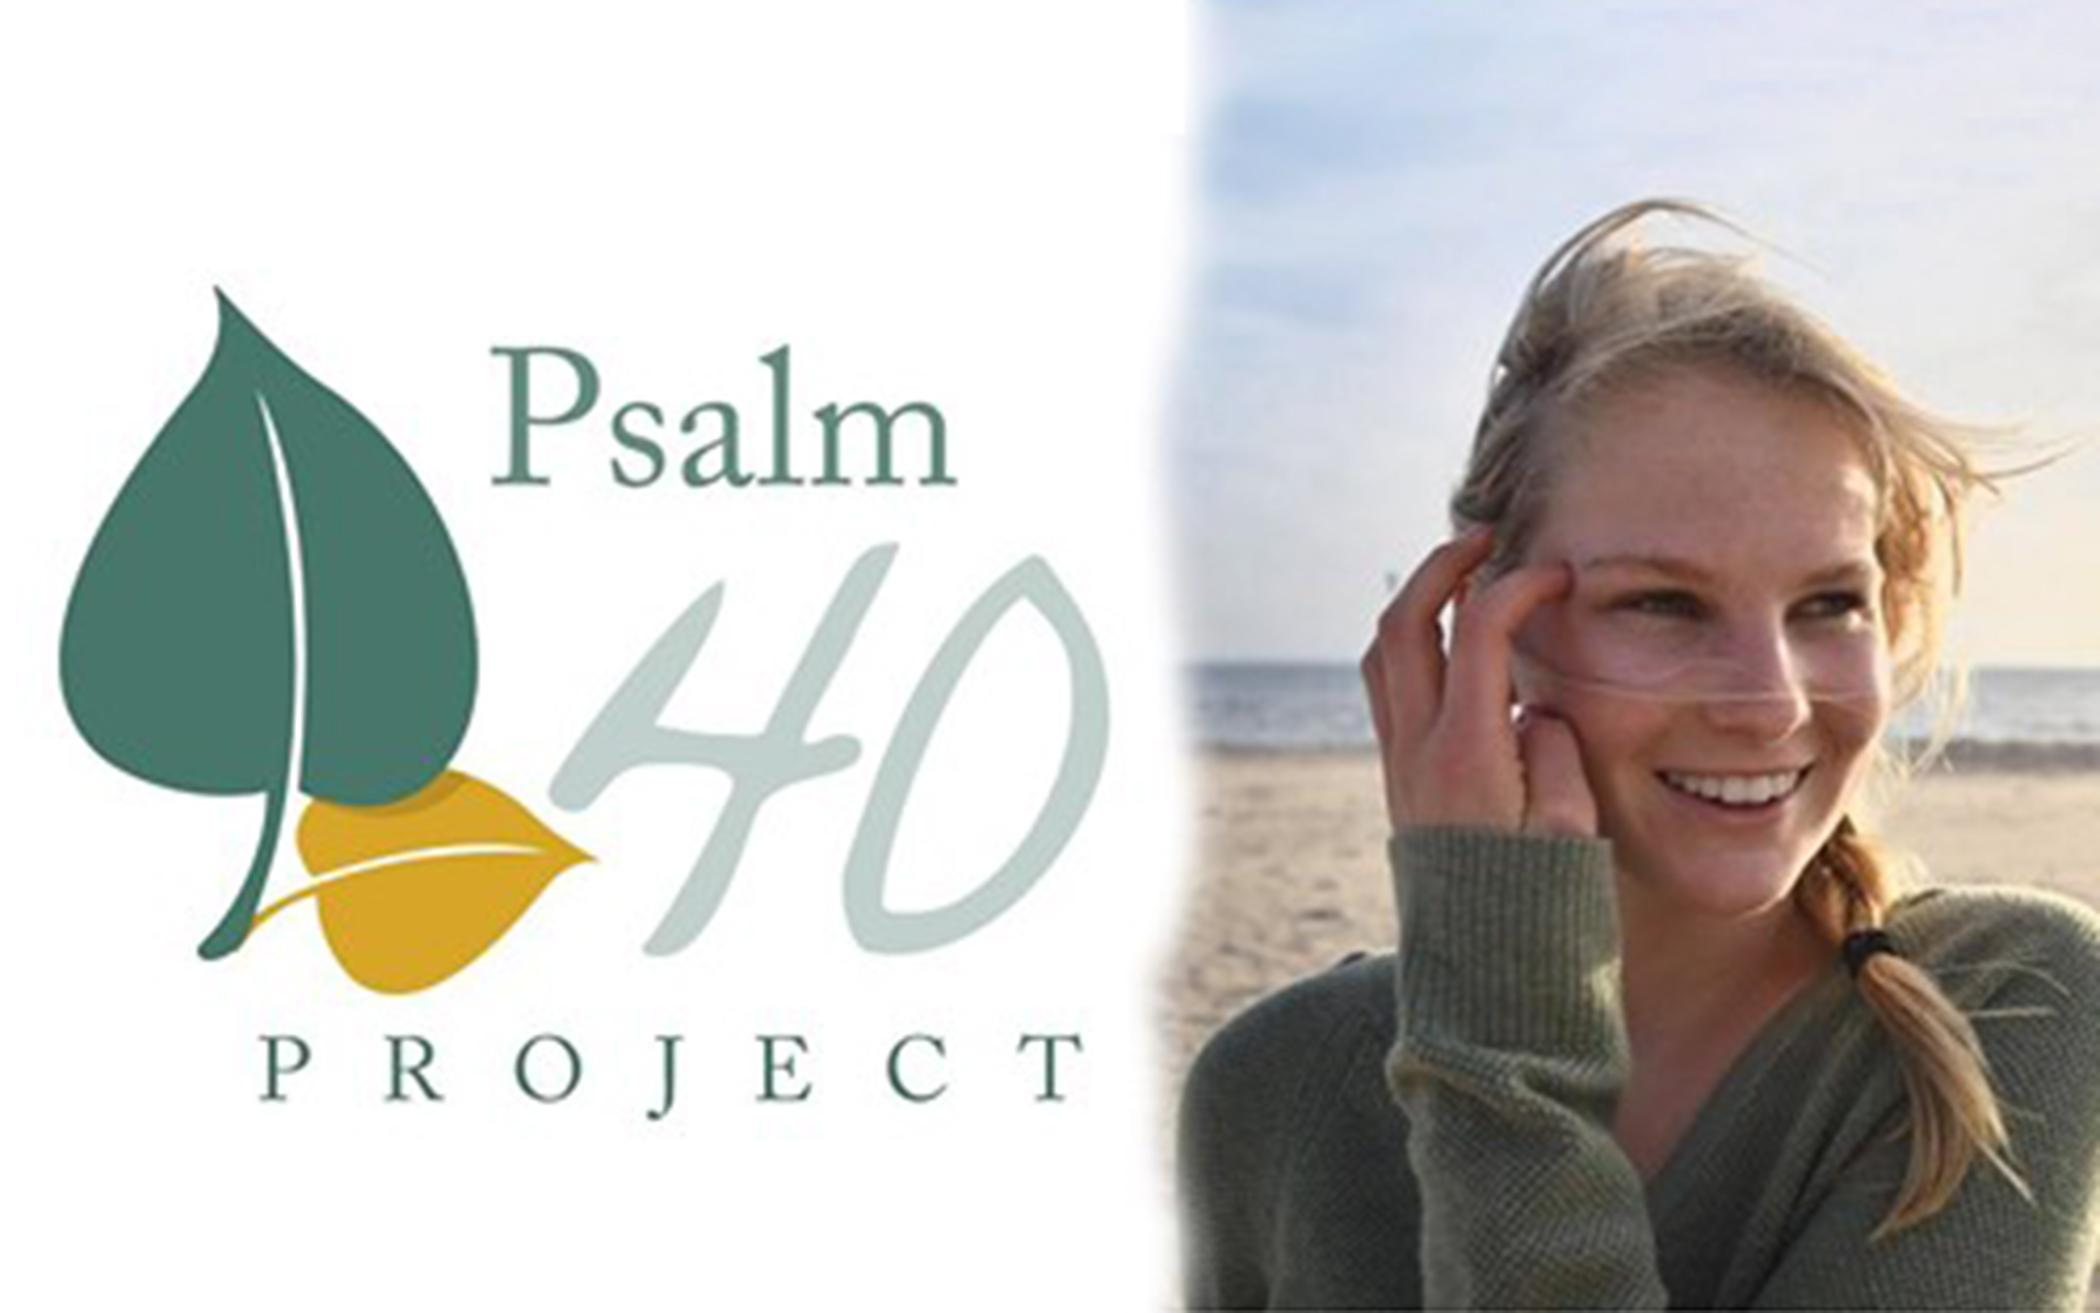 Michigan Church's Podcast Project Tells 'God's Story Through Our Stories'